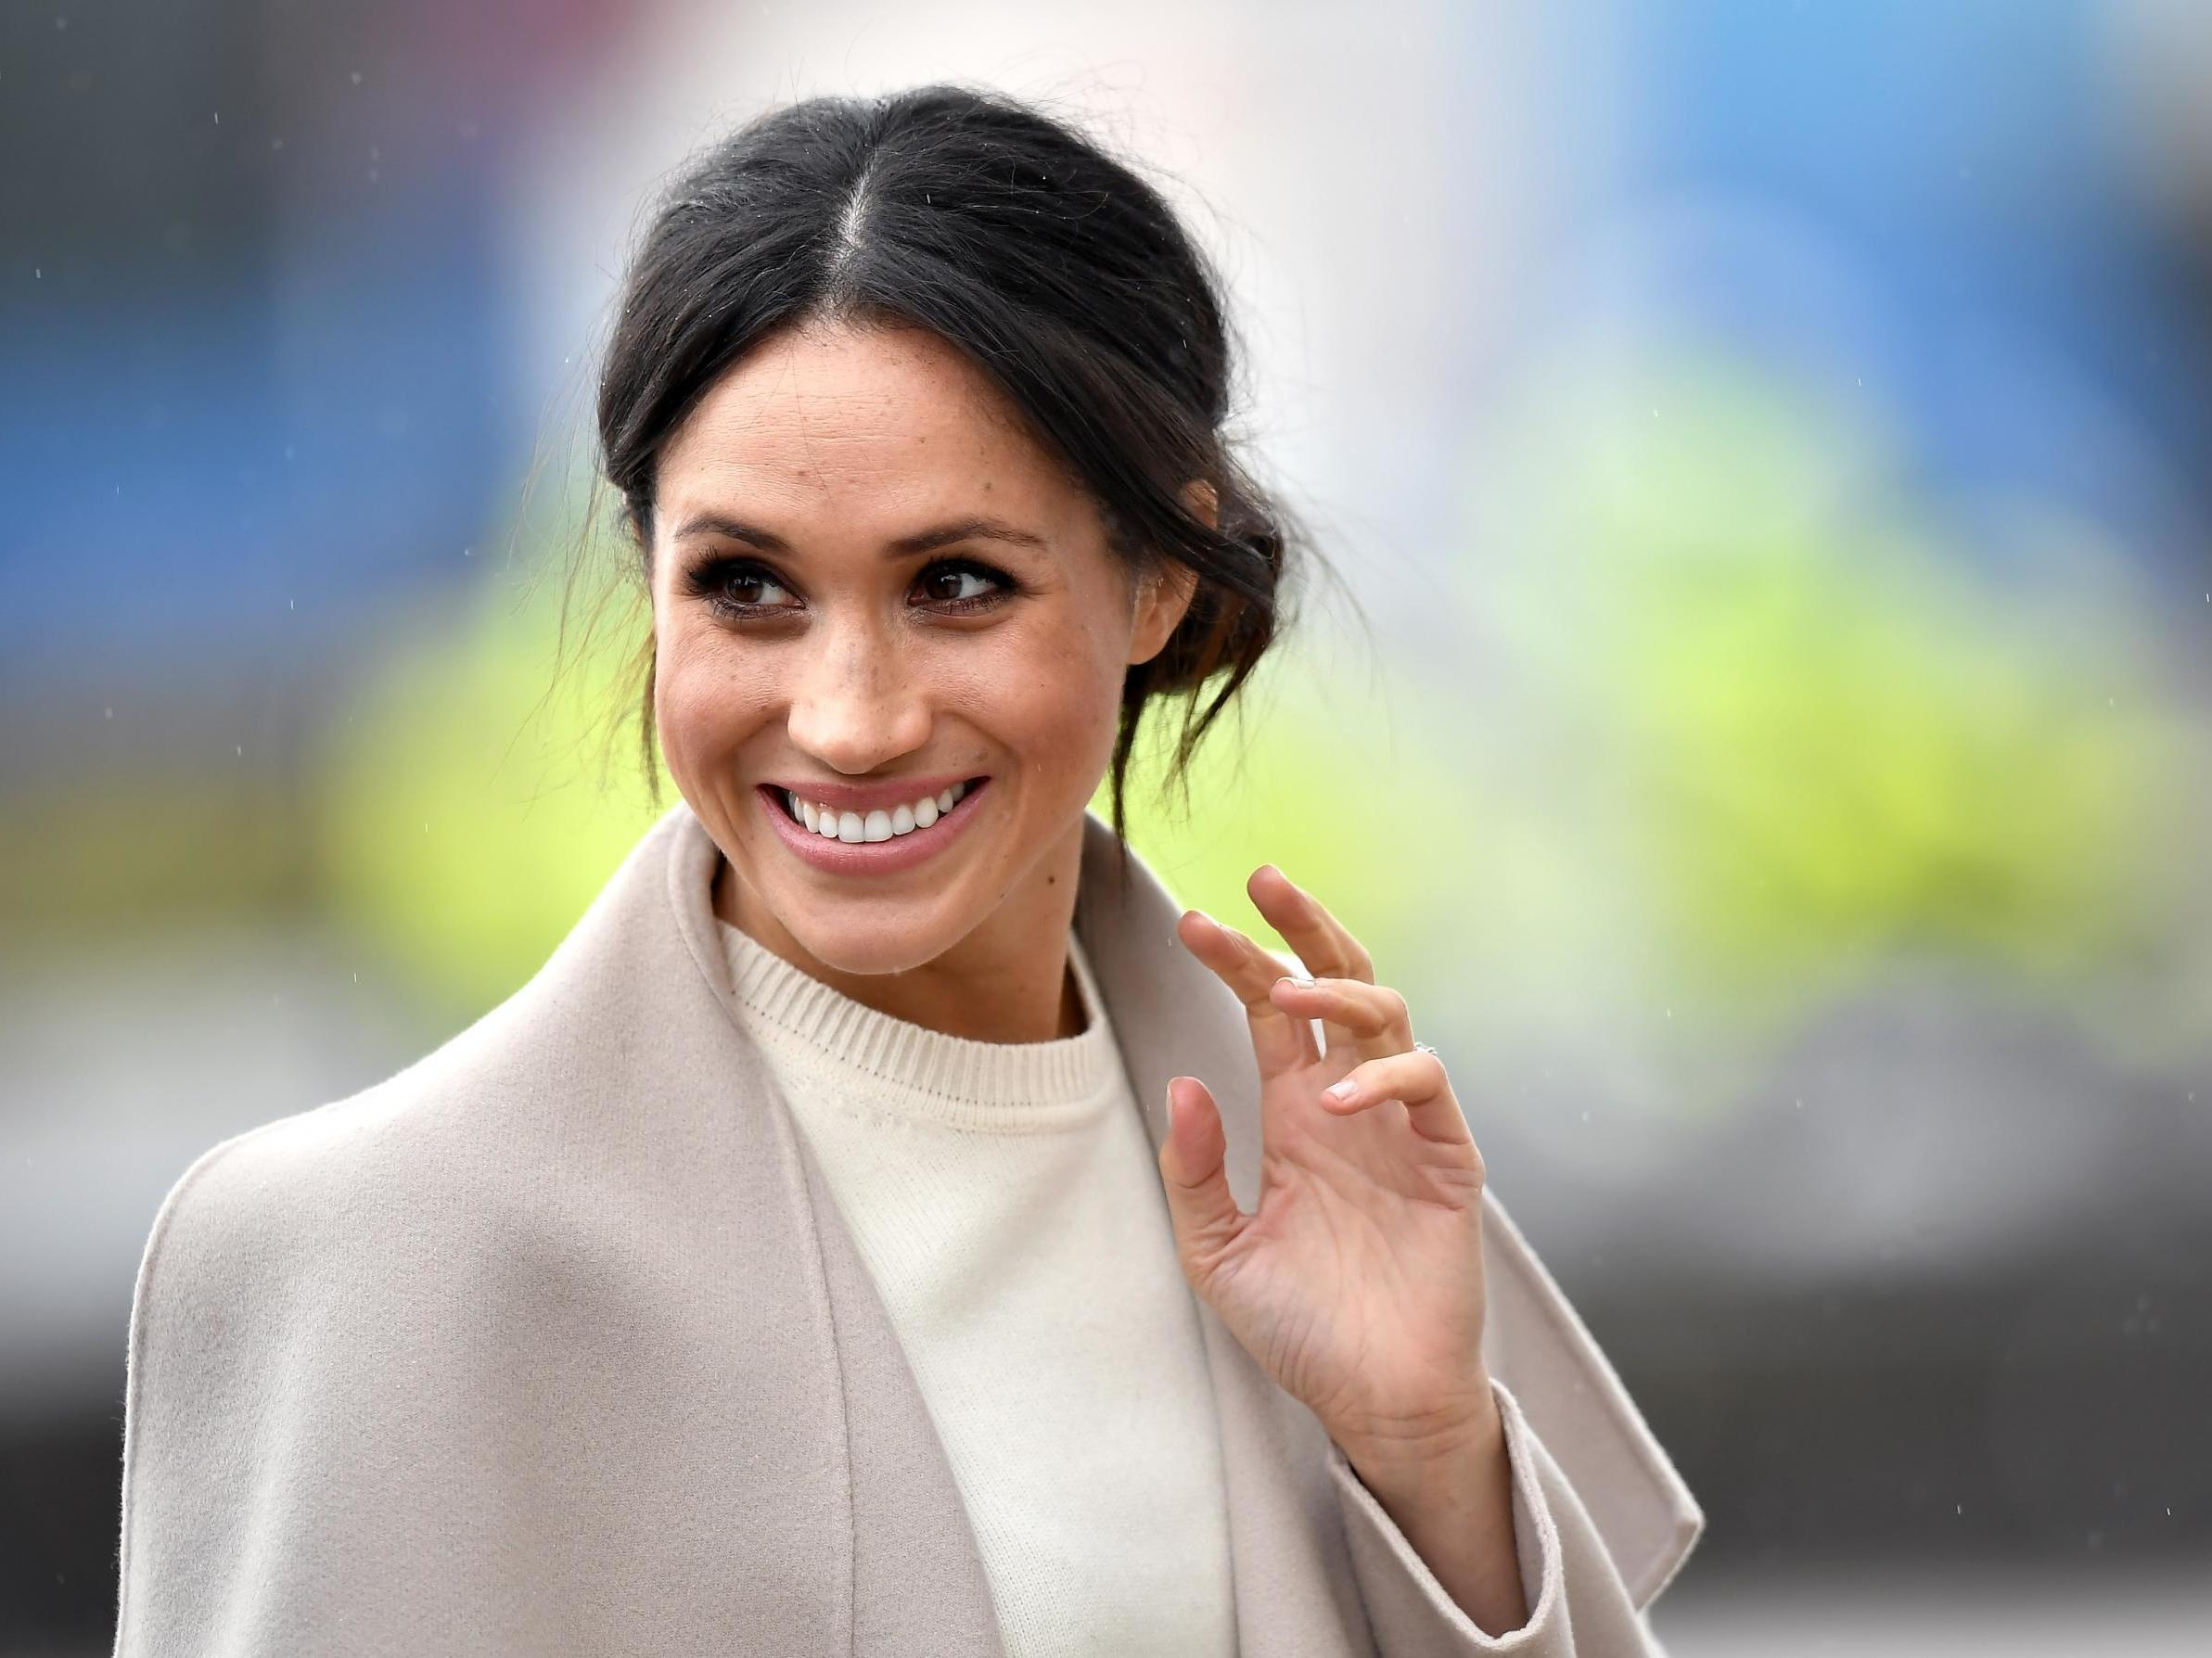 Five times Meghan Markle has spoken out about racism